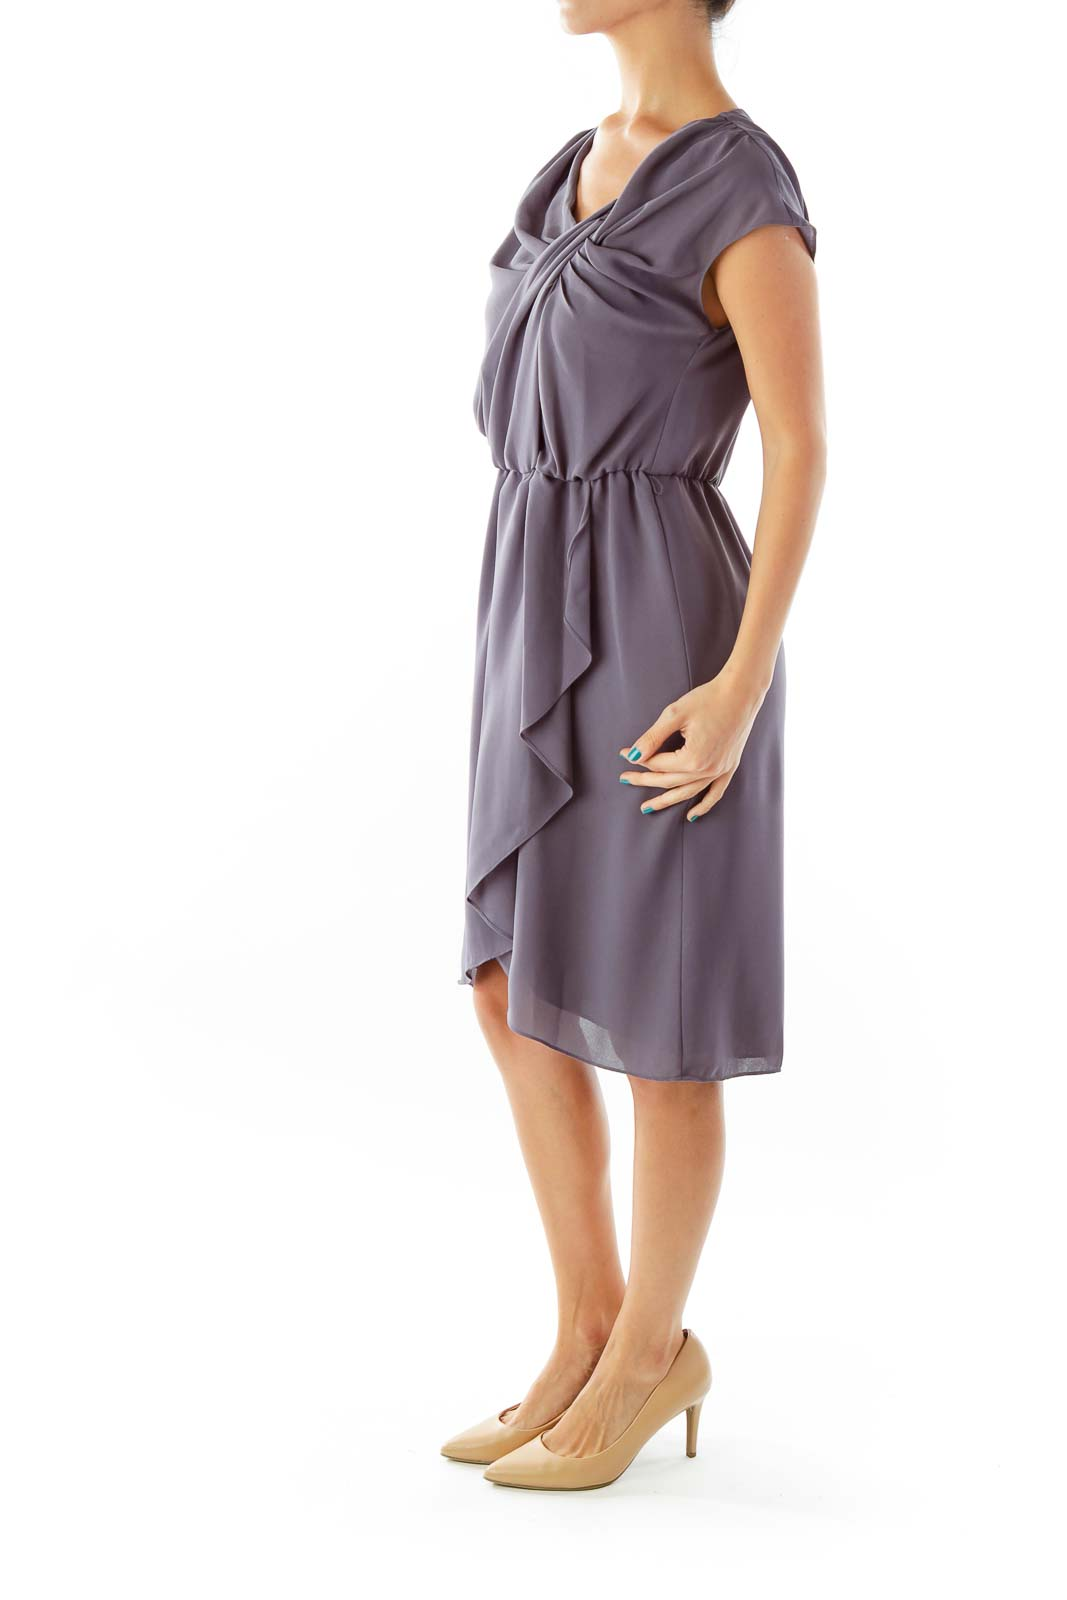 Blue Gray Work Dress